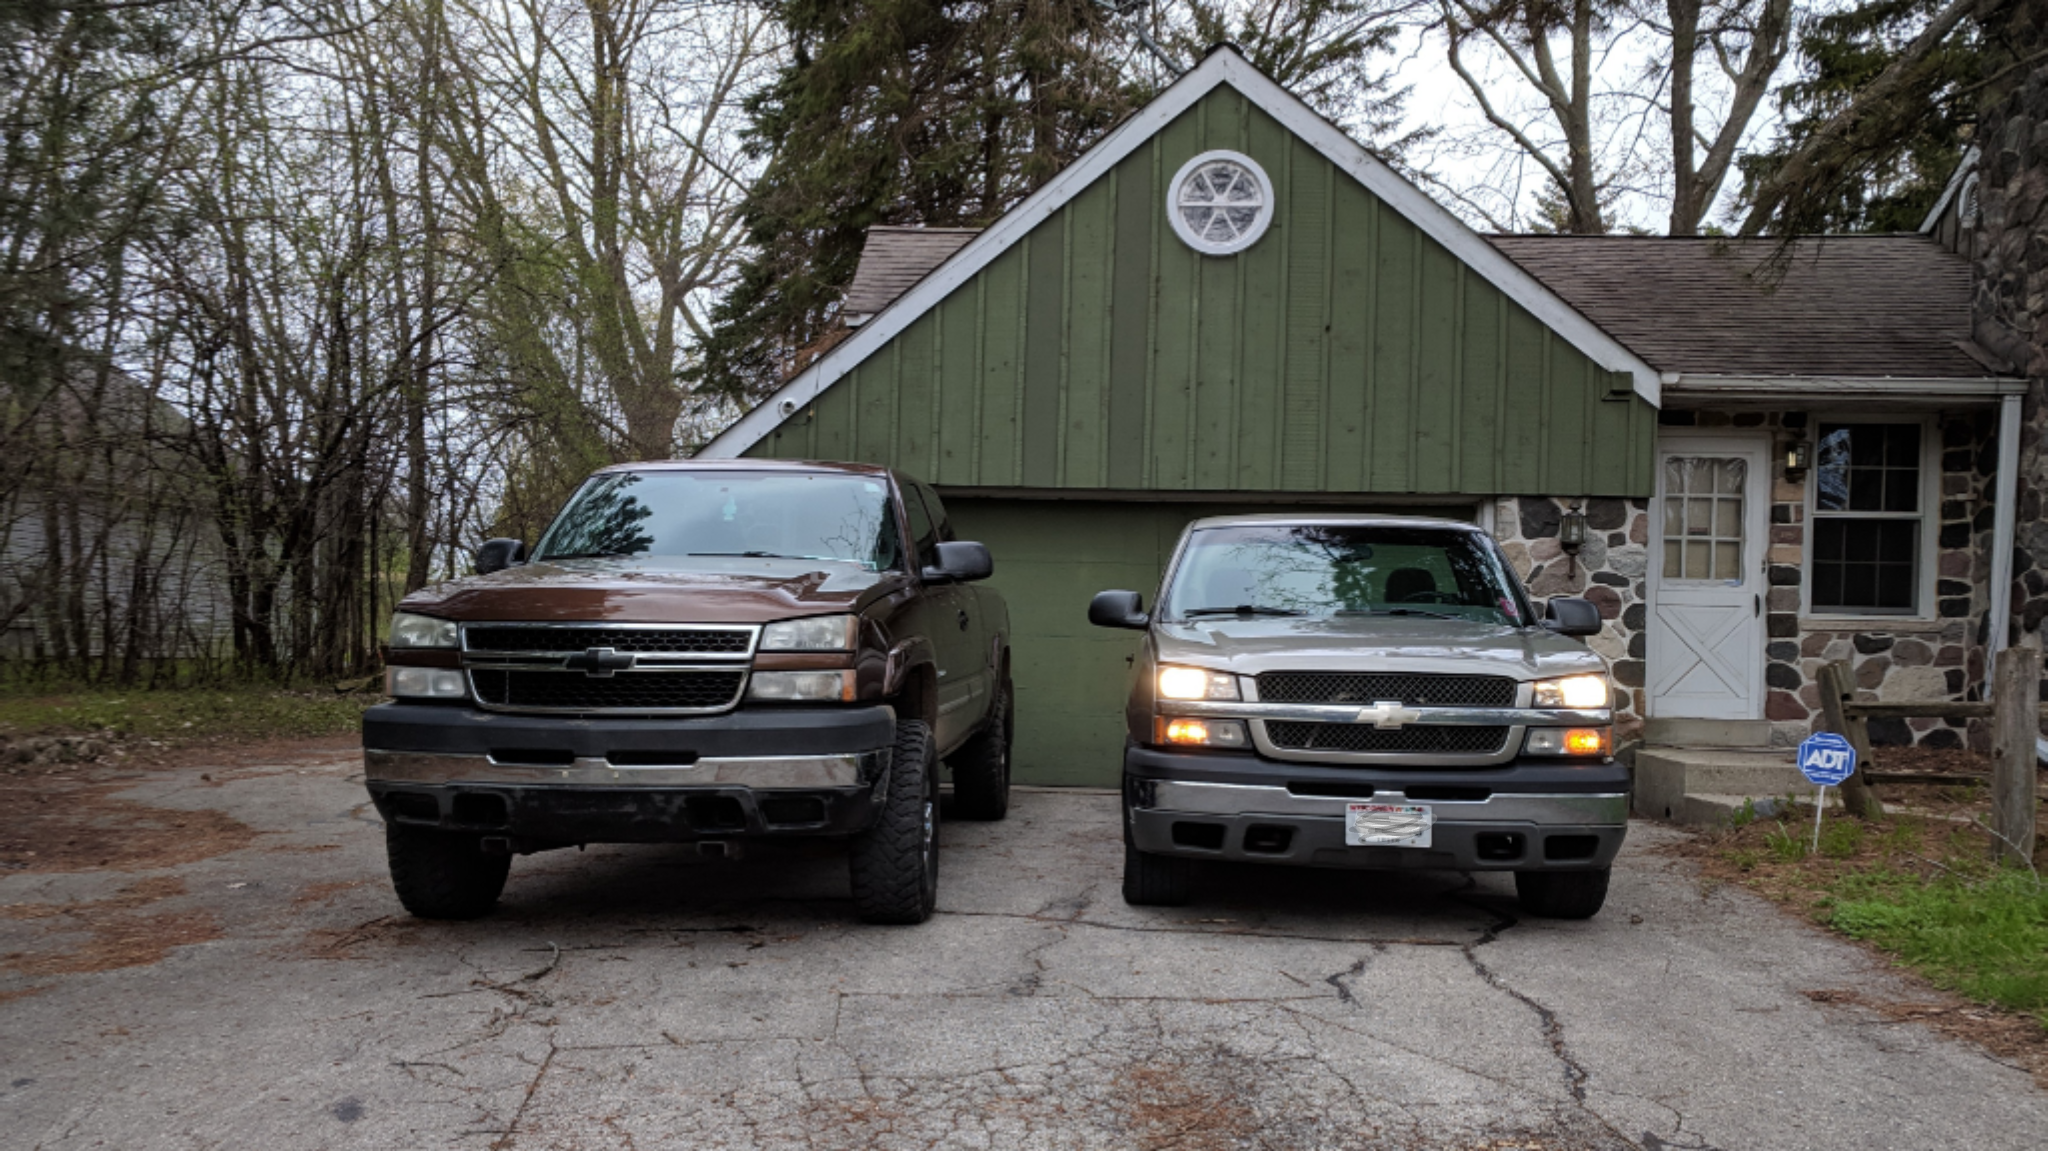 Click image for larger version  Name:trucks.png Views:16 Size:3.59 MB ID:104958